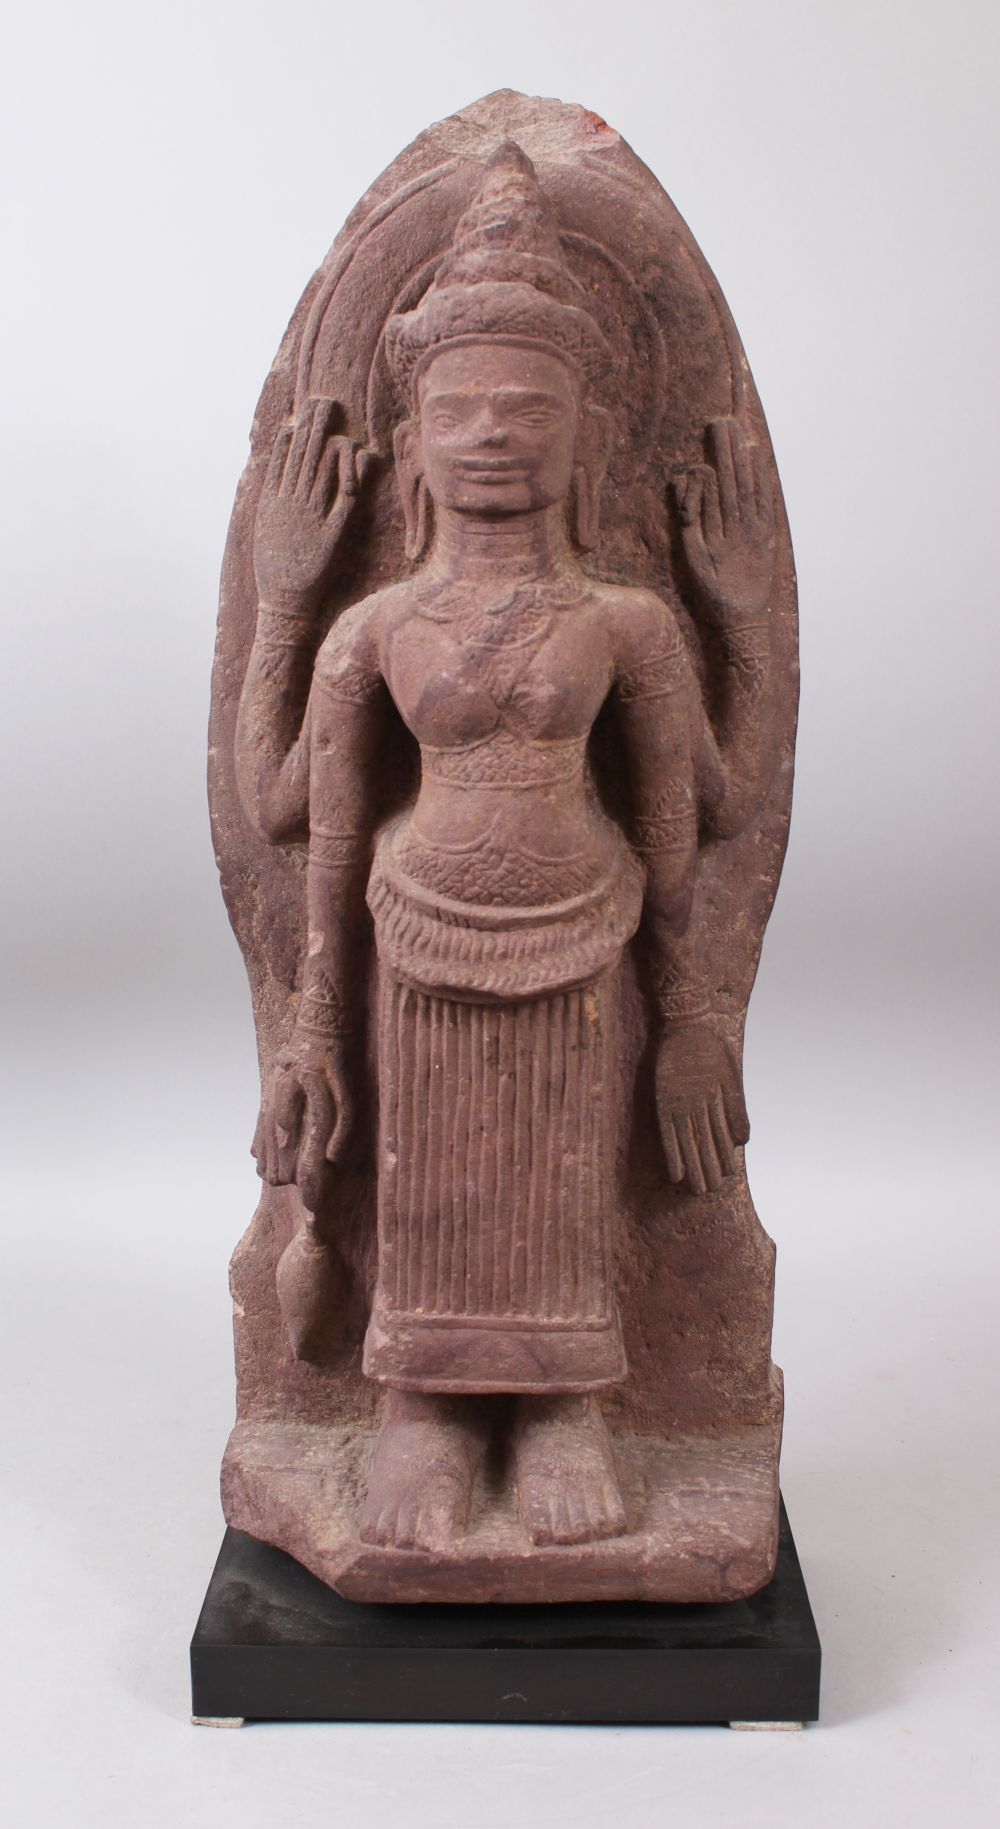 Lot 481 - A 12TH CENTURY STYLE CAMBODIAN KHMER STYLE RED SANDSTONE CARVING OF A FOUR ARMED DEITY. 52cms high.